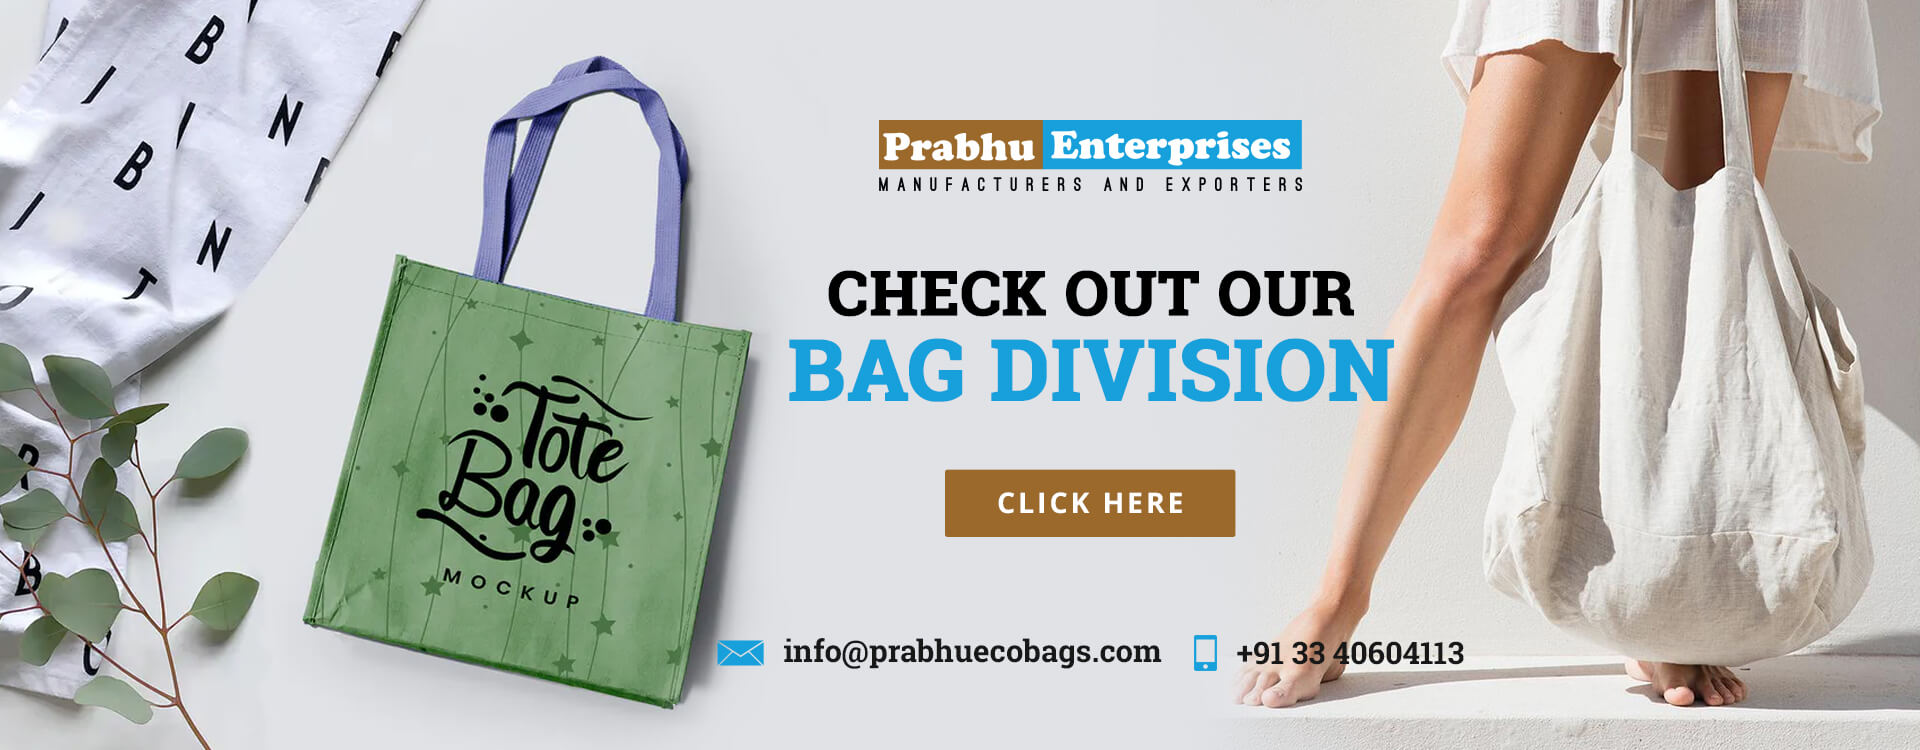 Prabhu Enterprises